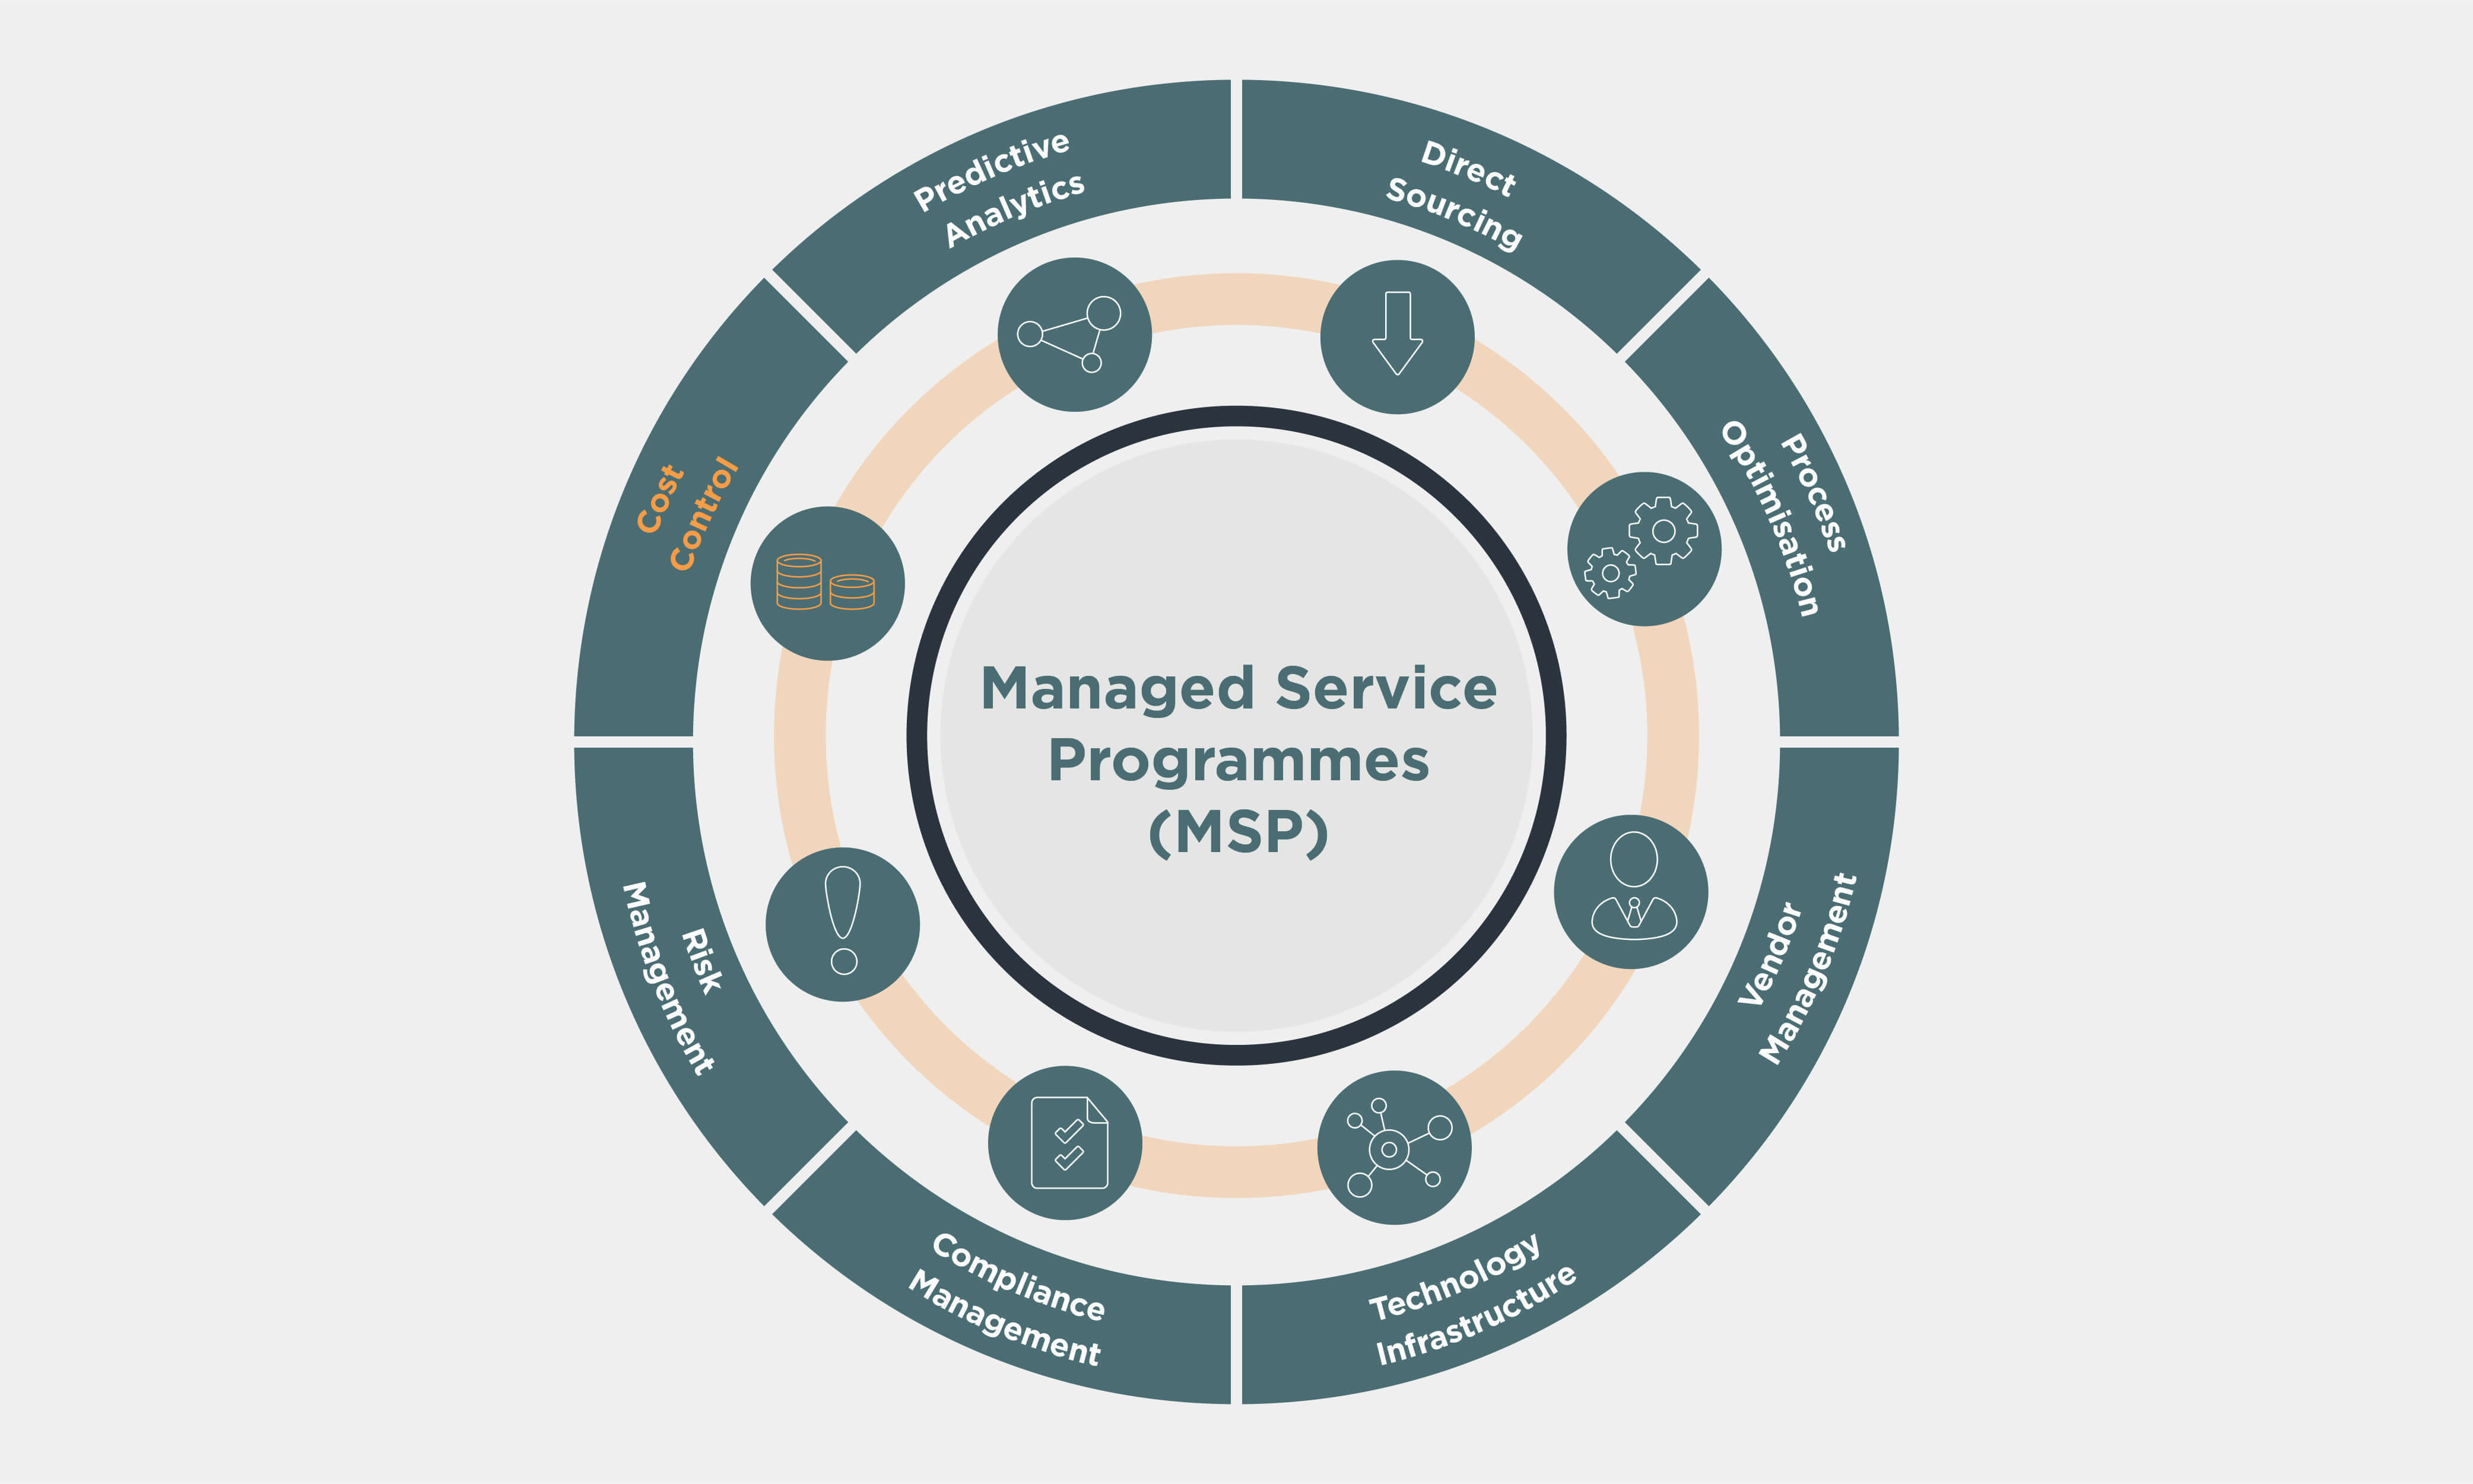 Managed Service Programmes (MSP) wheel with Cost Control highlighted in orange